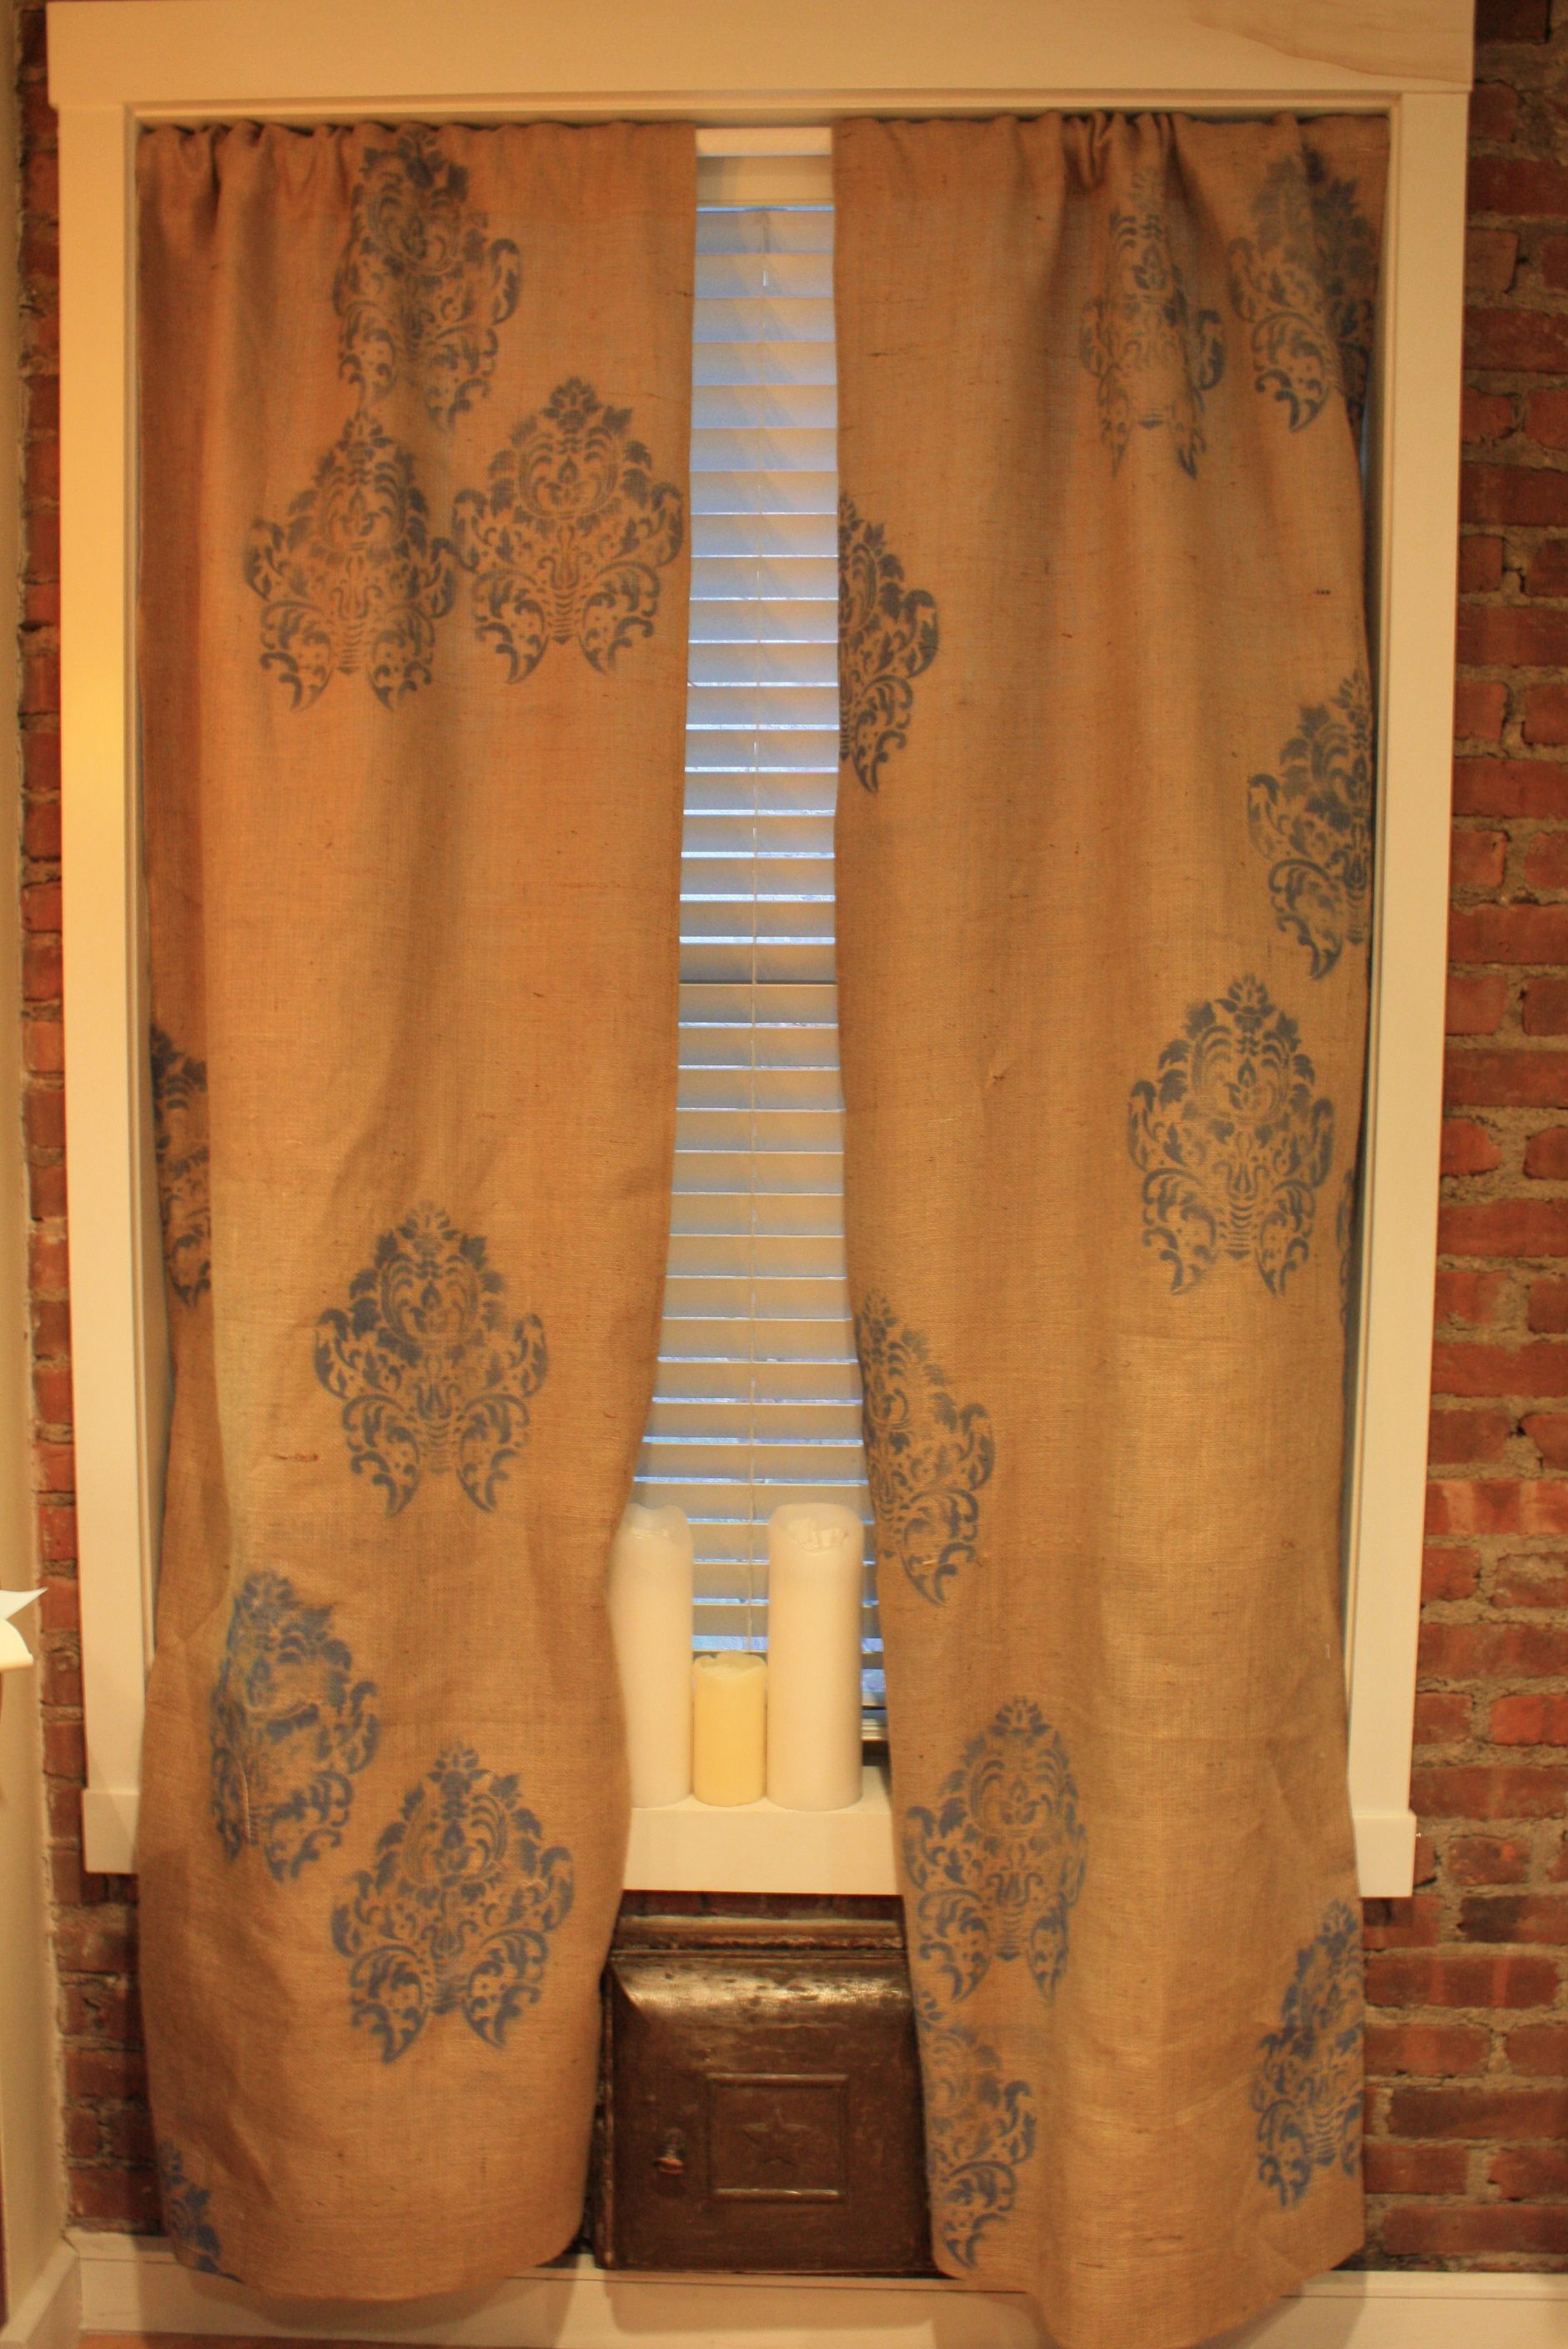 New random damask printed burlap curtains from Sew Southern Sewn! Get into it!   http://www.etsy.com/shop/SewSouthernSewn?ref=ss_profile